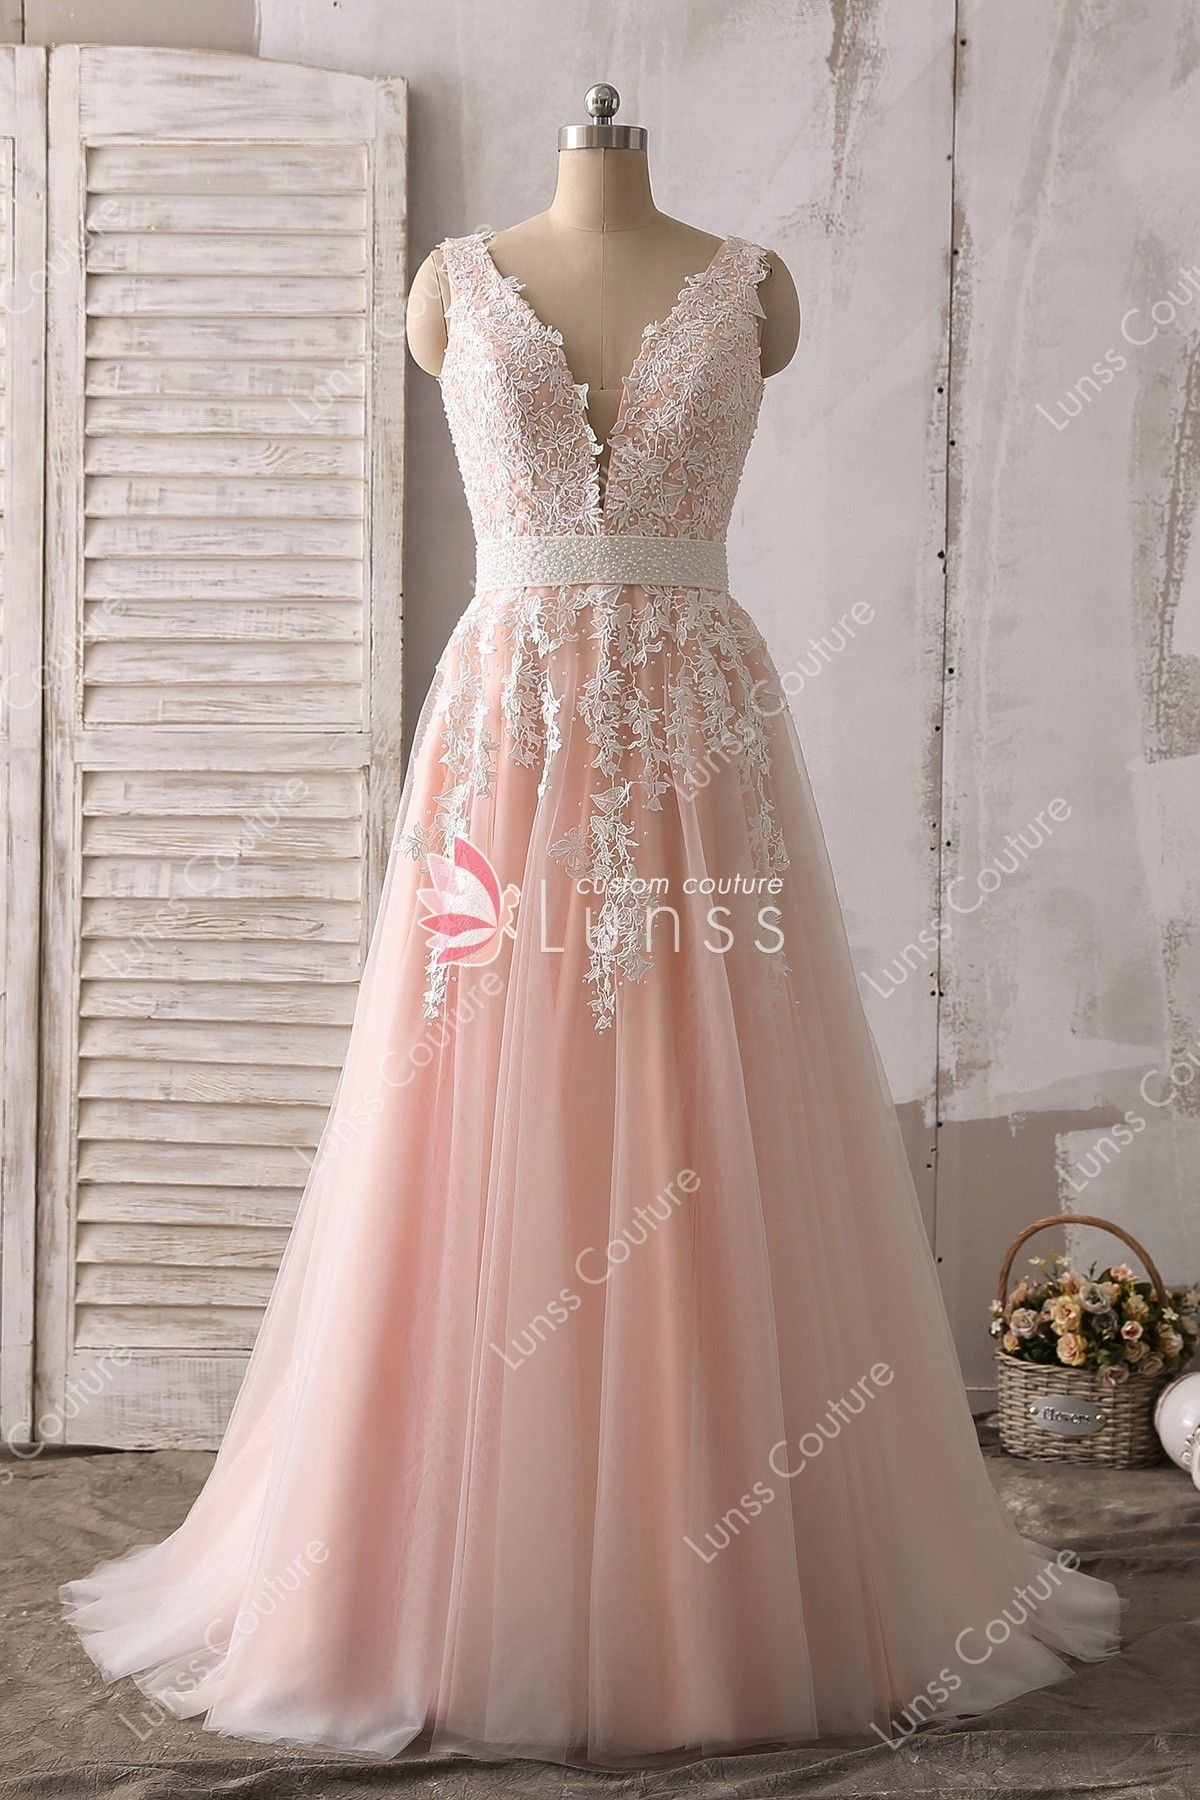 58feb8f173a This pink A-line prom dress is embellished with lace appliques and high  quality ivory